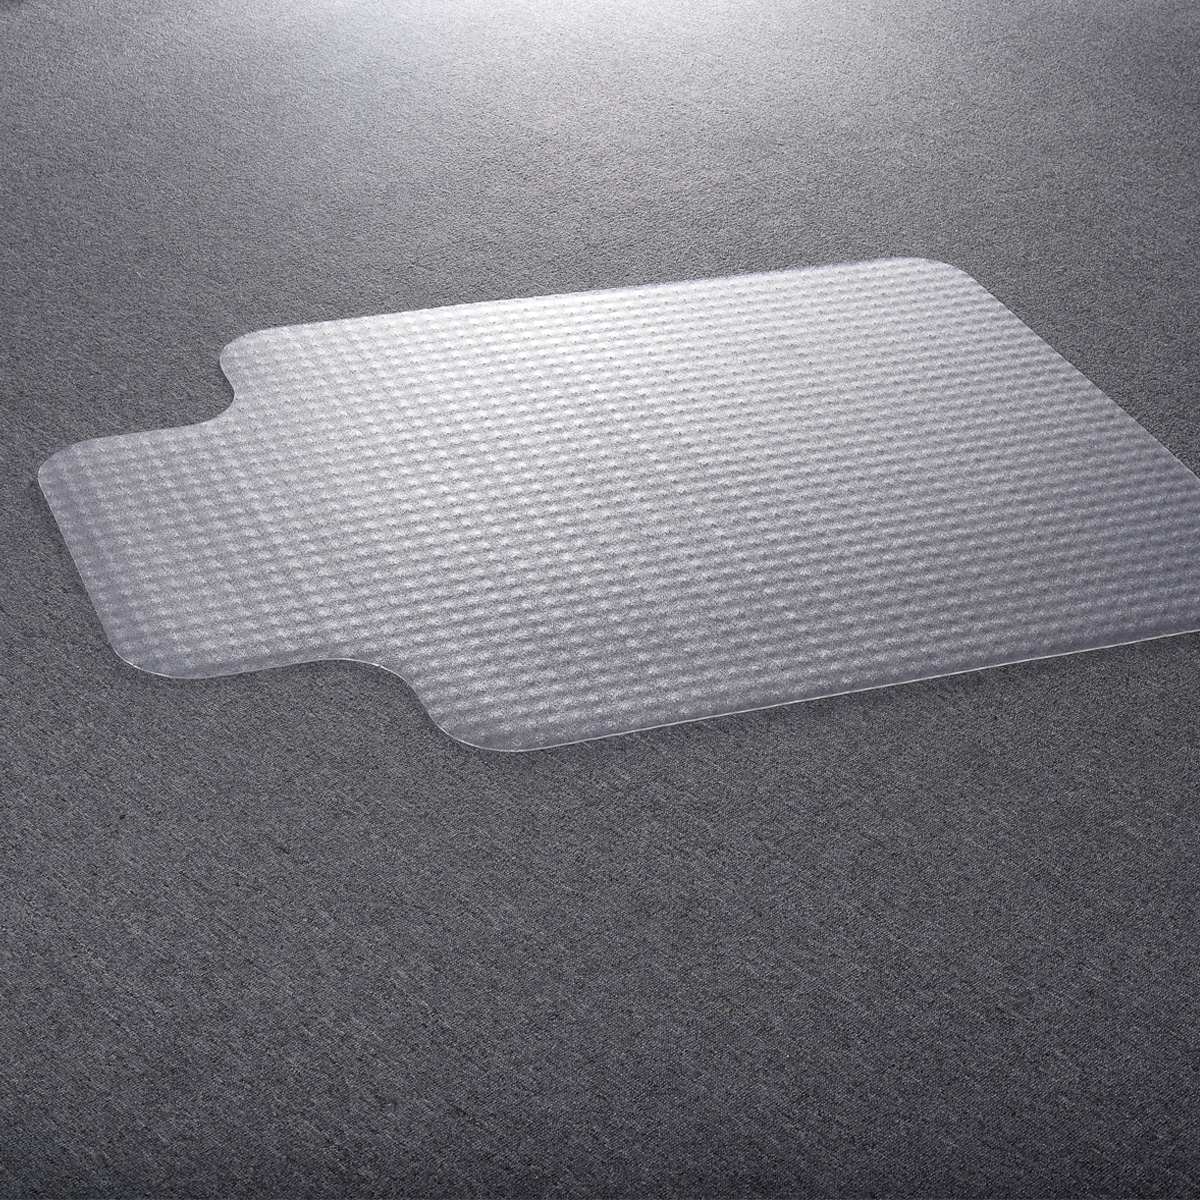 Clear Plastic Mat For Carpet Images Office Chair Mats To Protect